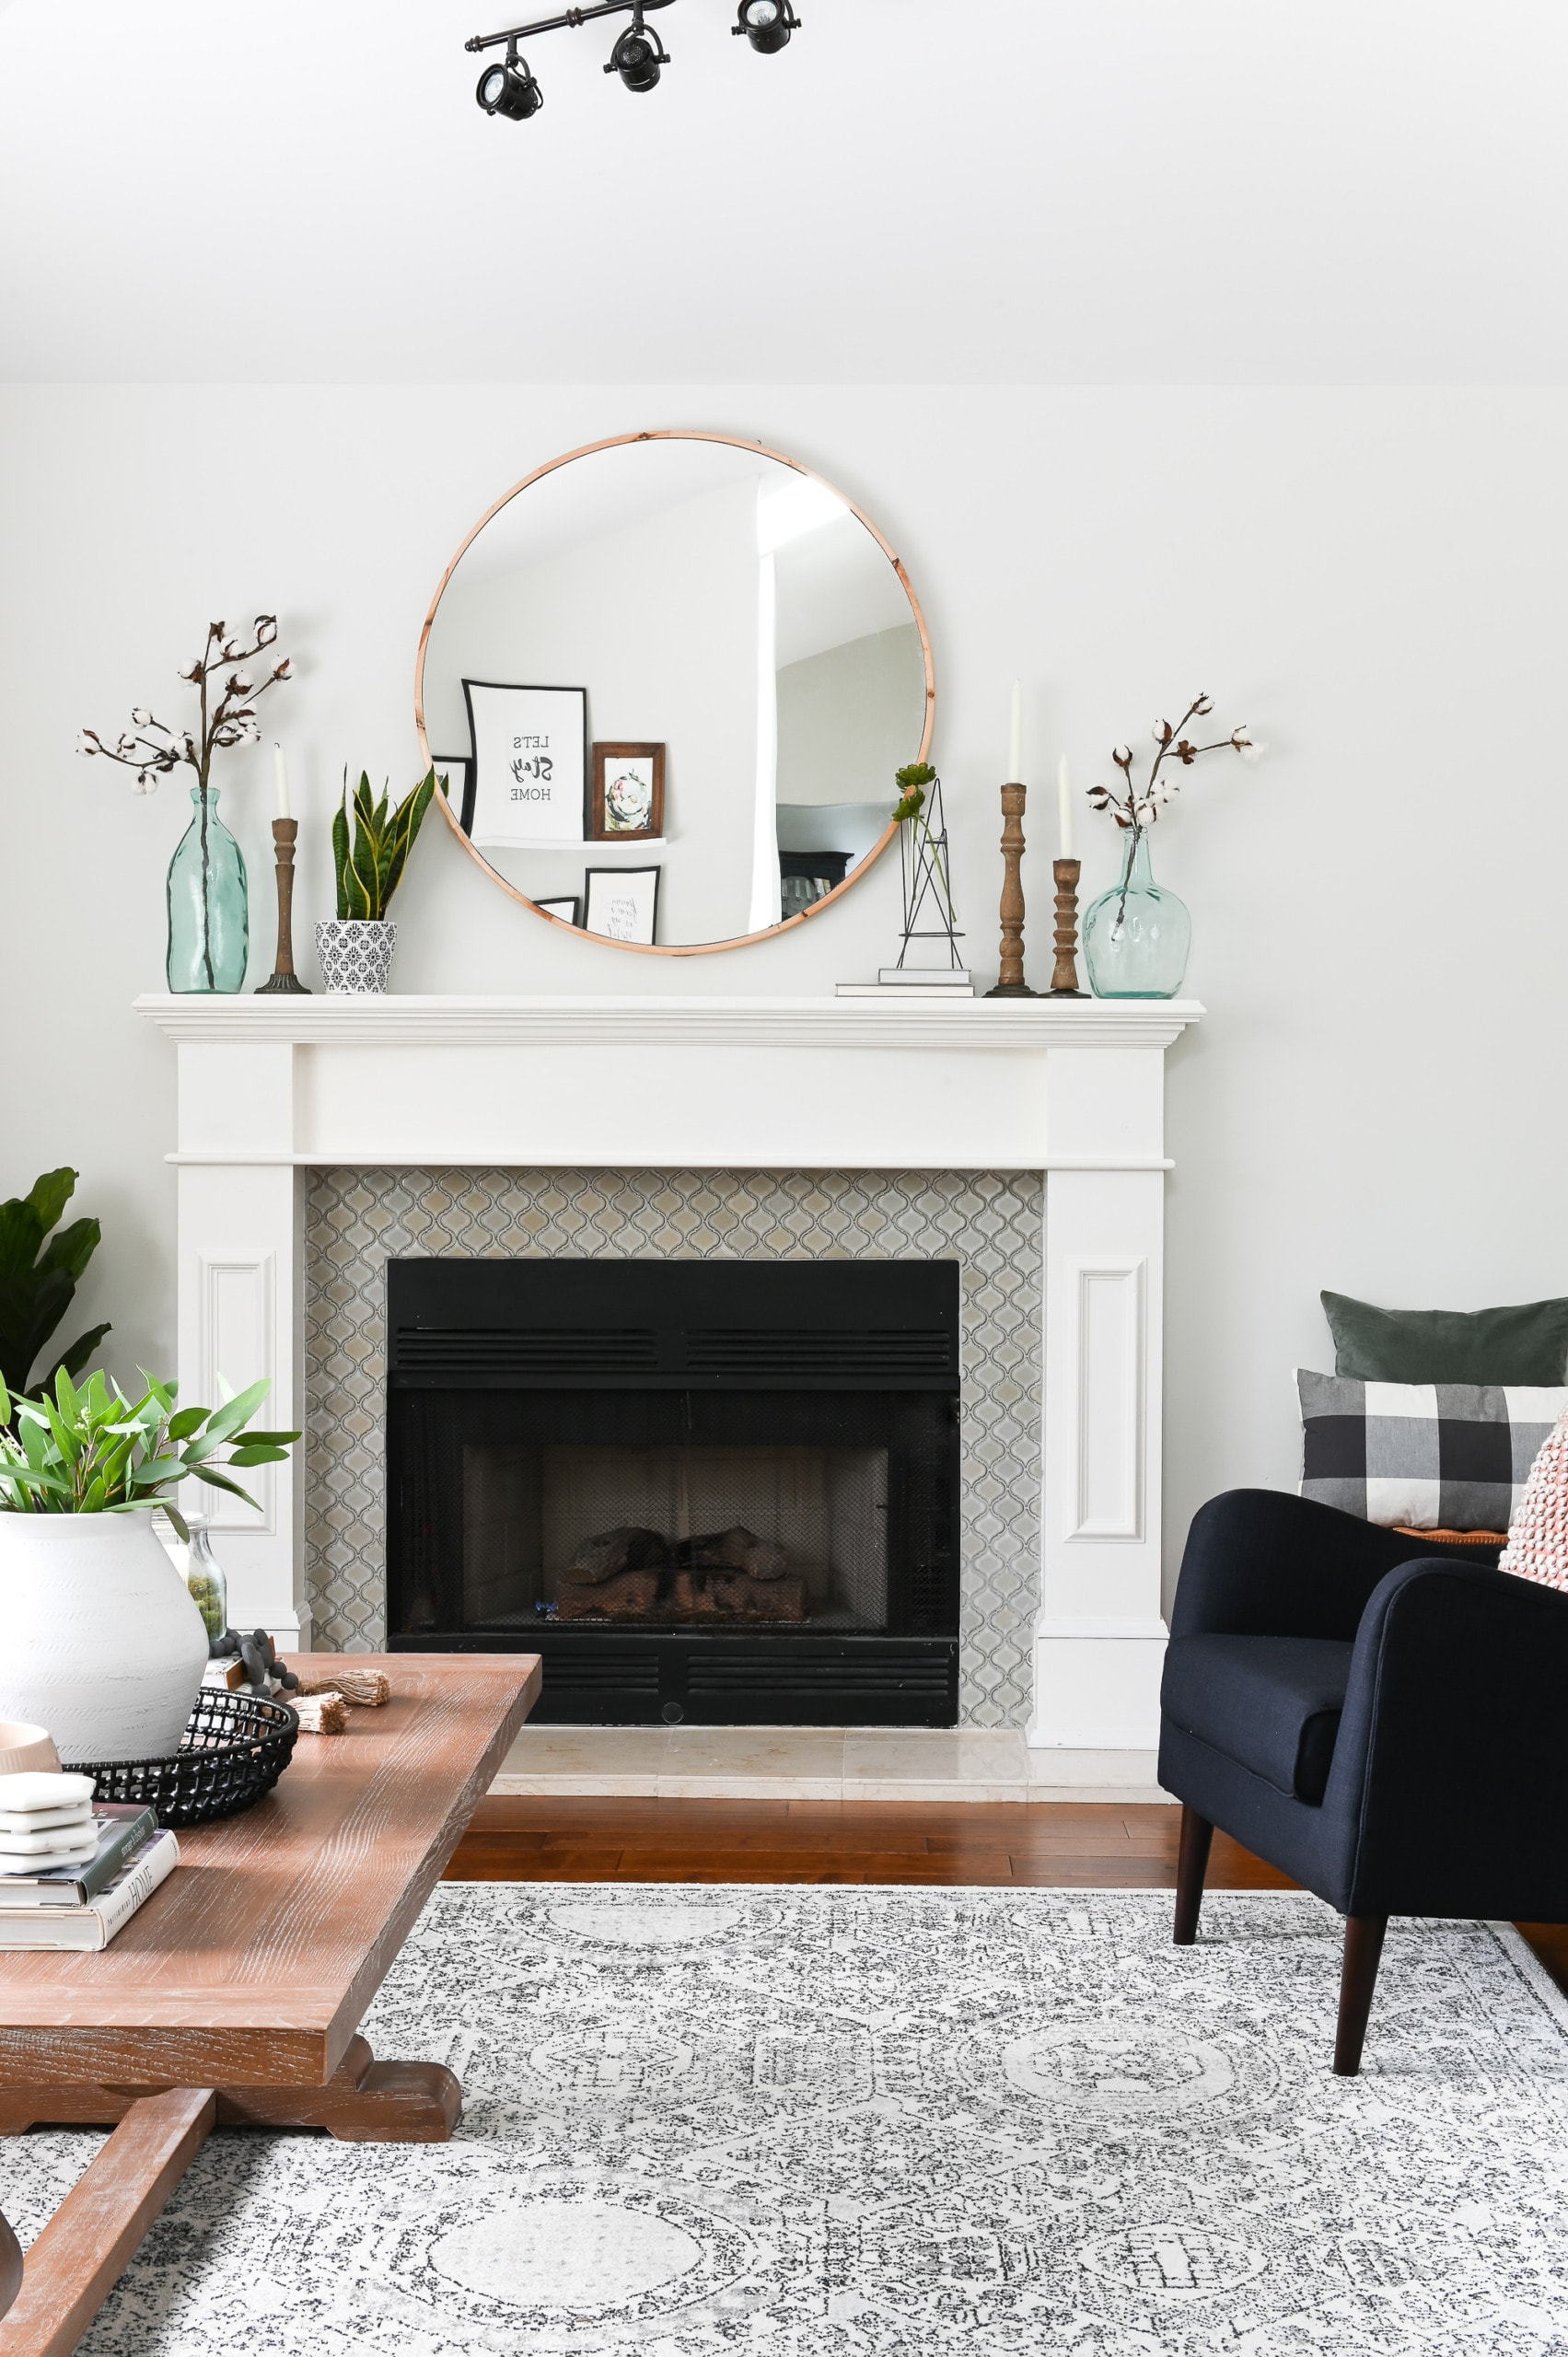 Living room fireplace and mantle